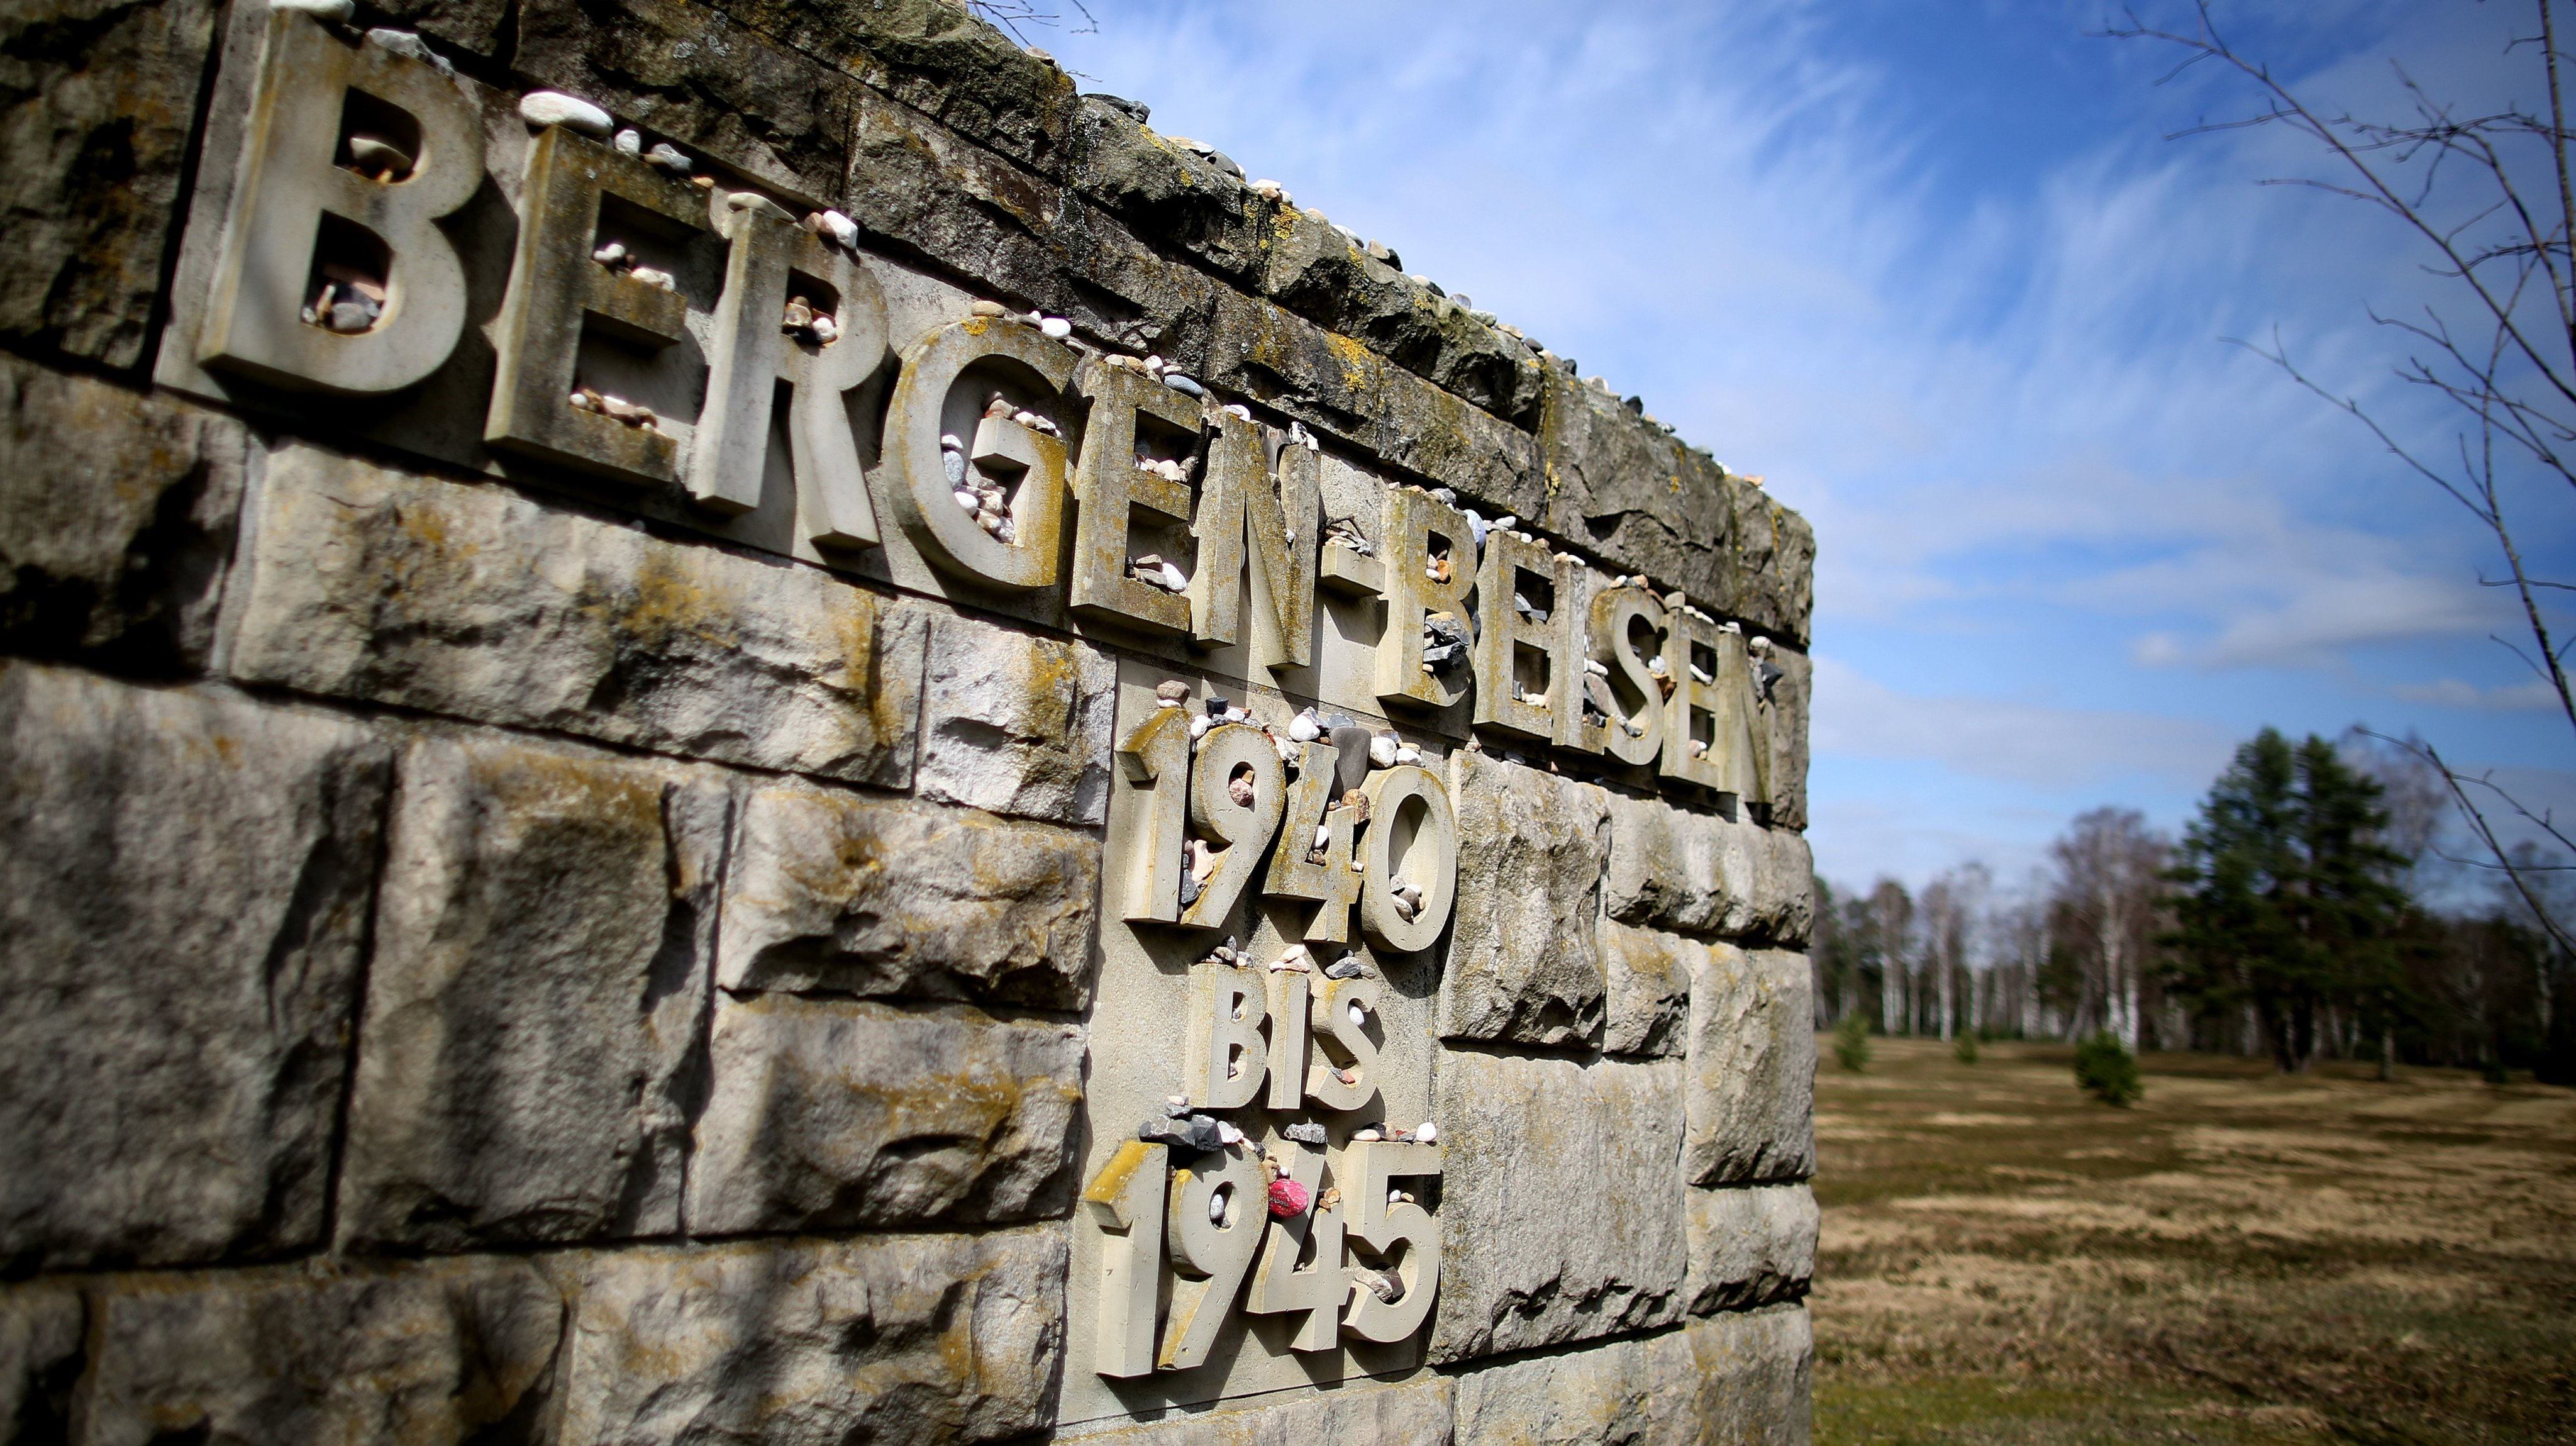 GERMANY-HISTORY-WWII-NAZI-CONCENTRATION-CAMP-LIBERATION-ANNIVERS